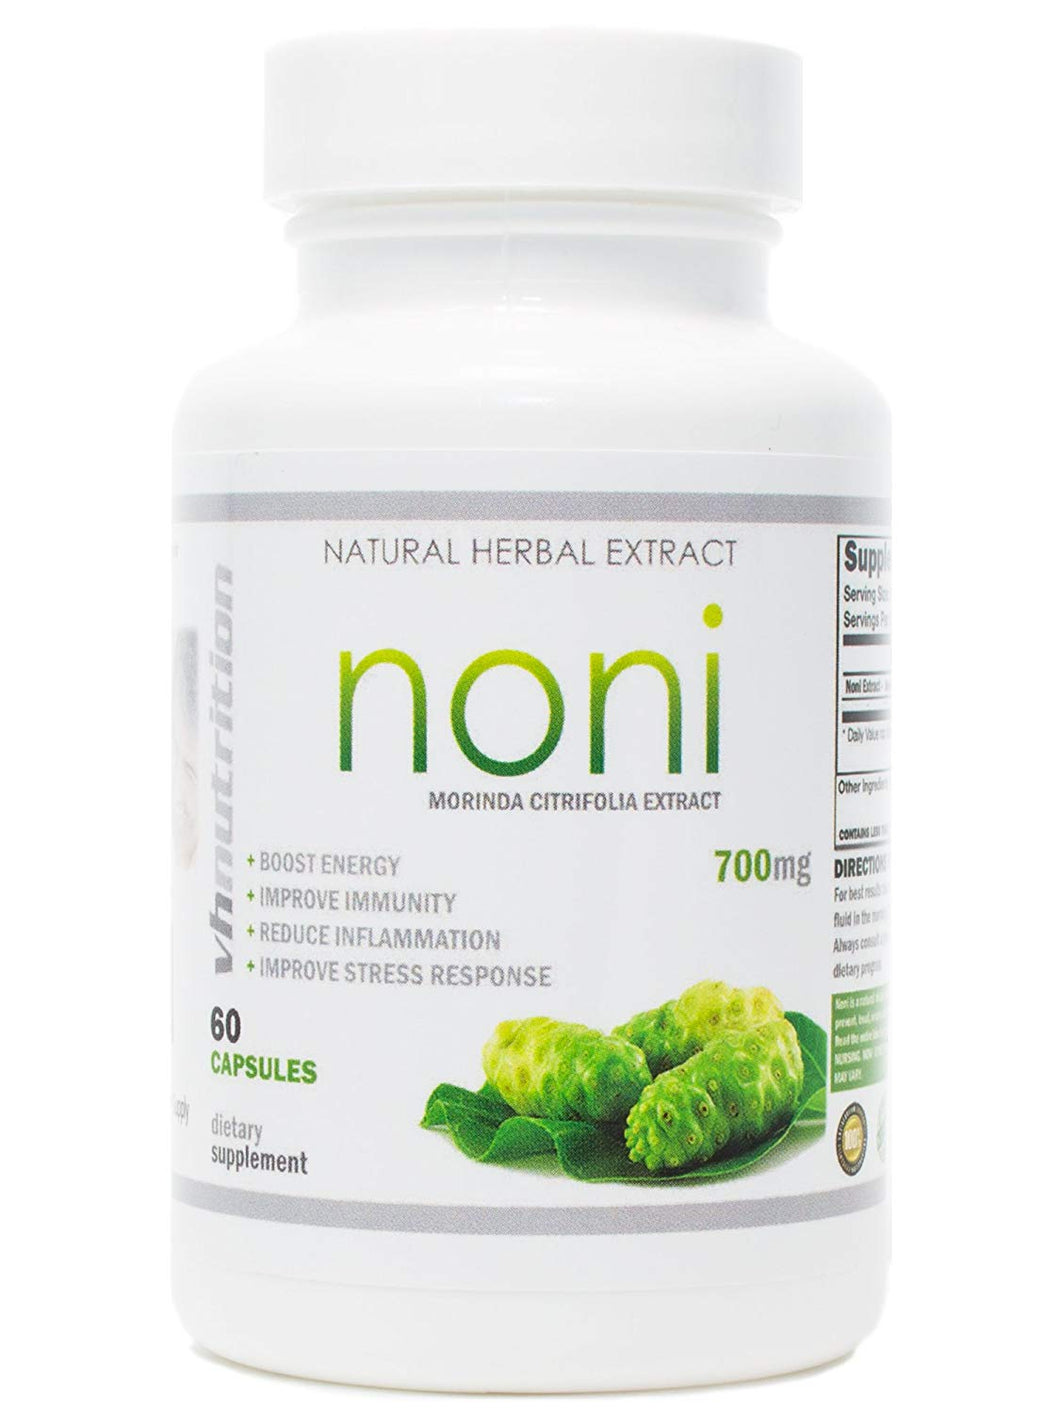 Noni Capsules | 700mg Morinda citrifolia Powder in Pills | 60 Day Supply